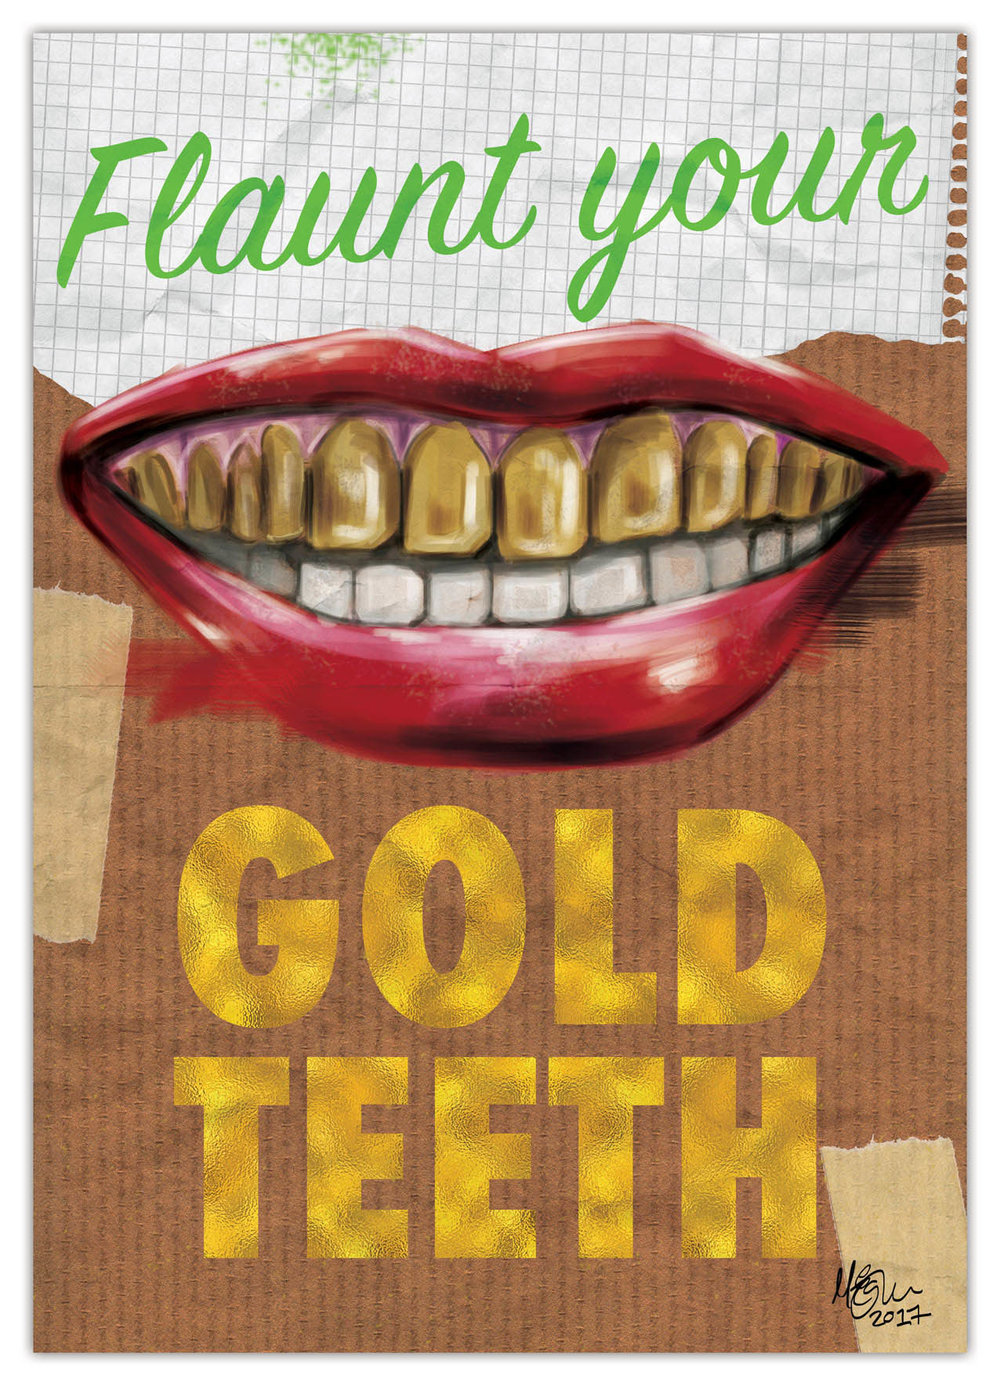 flaunt-your-gold-teeth_2_with-border.jpg